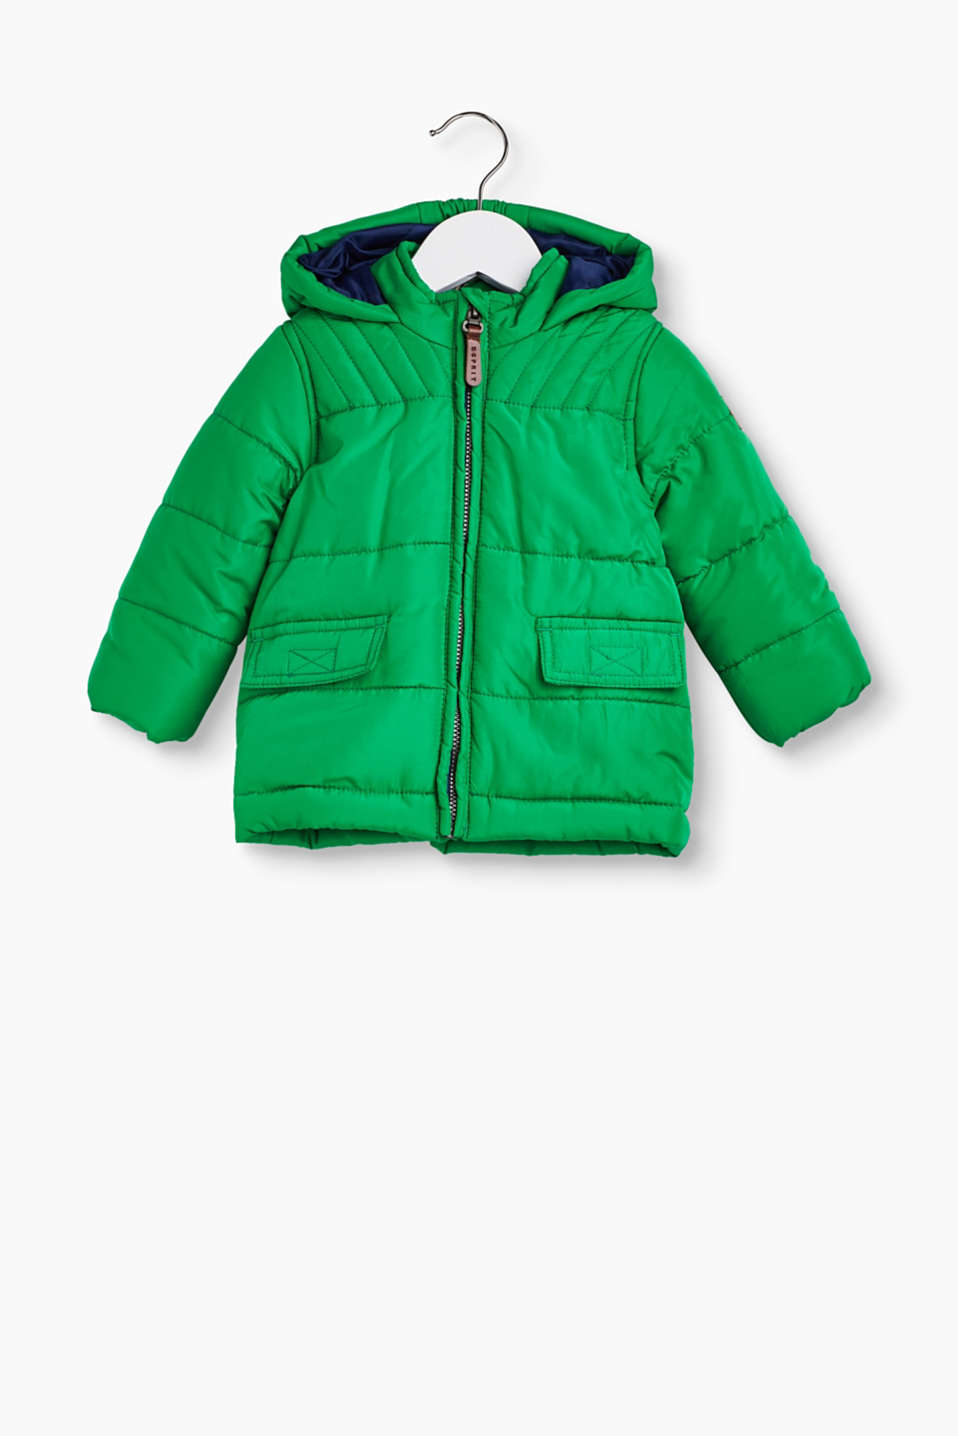 Just the thing for winter: padded parka jacket made of weatherproof polyester fabric.